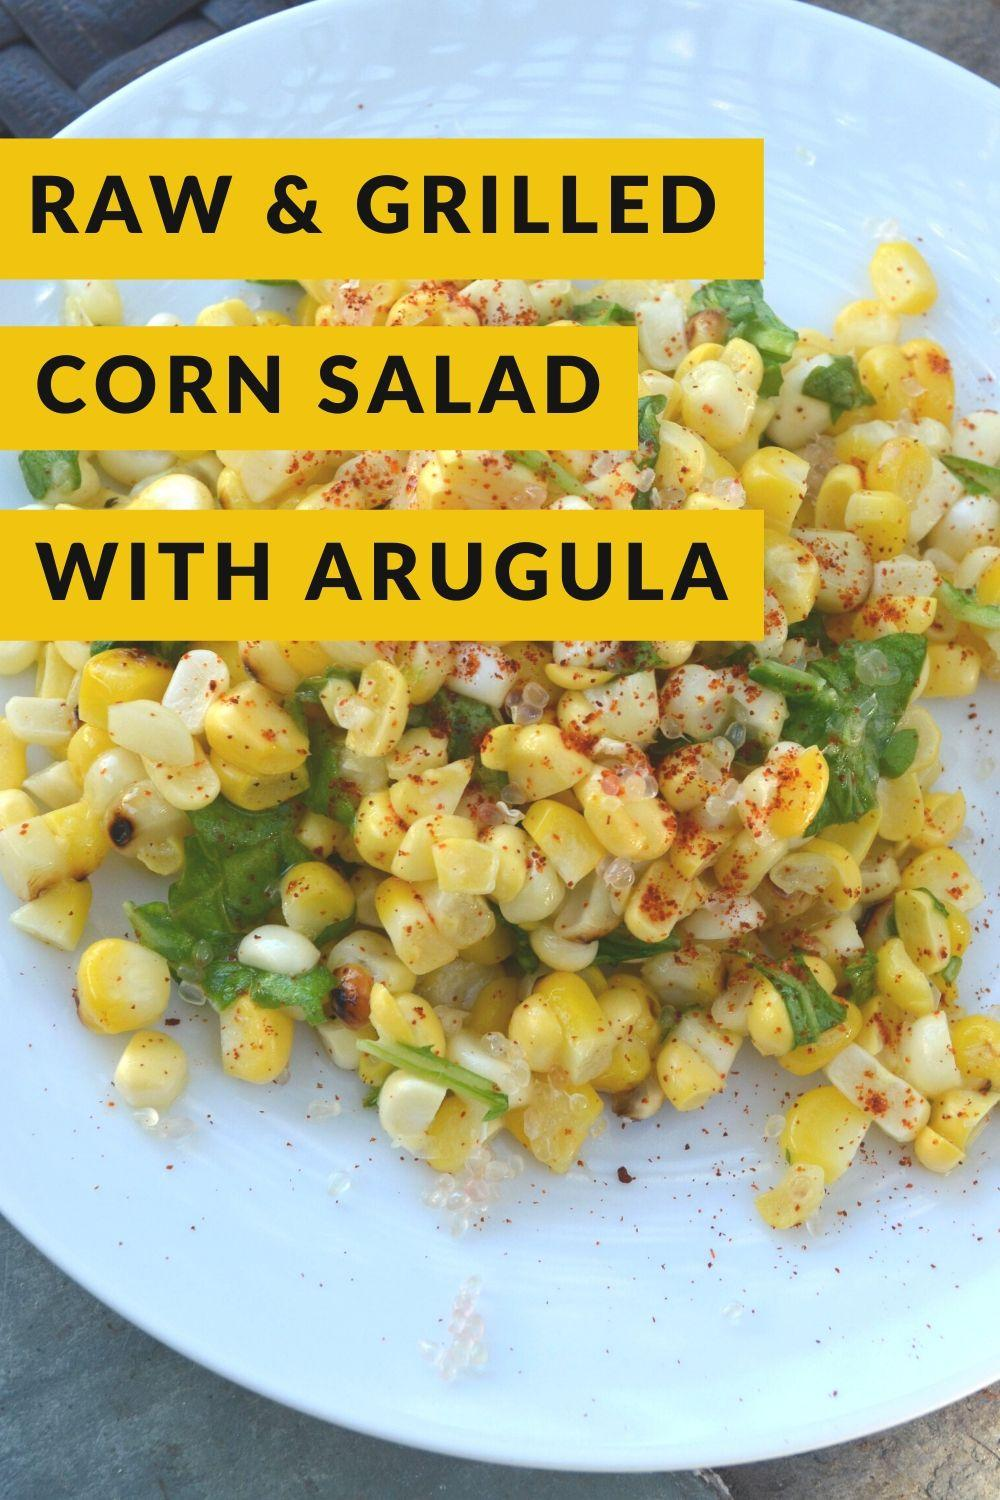 Grilled & Raw Corn Salad with Arugula